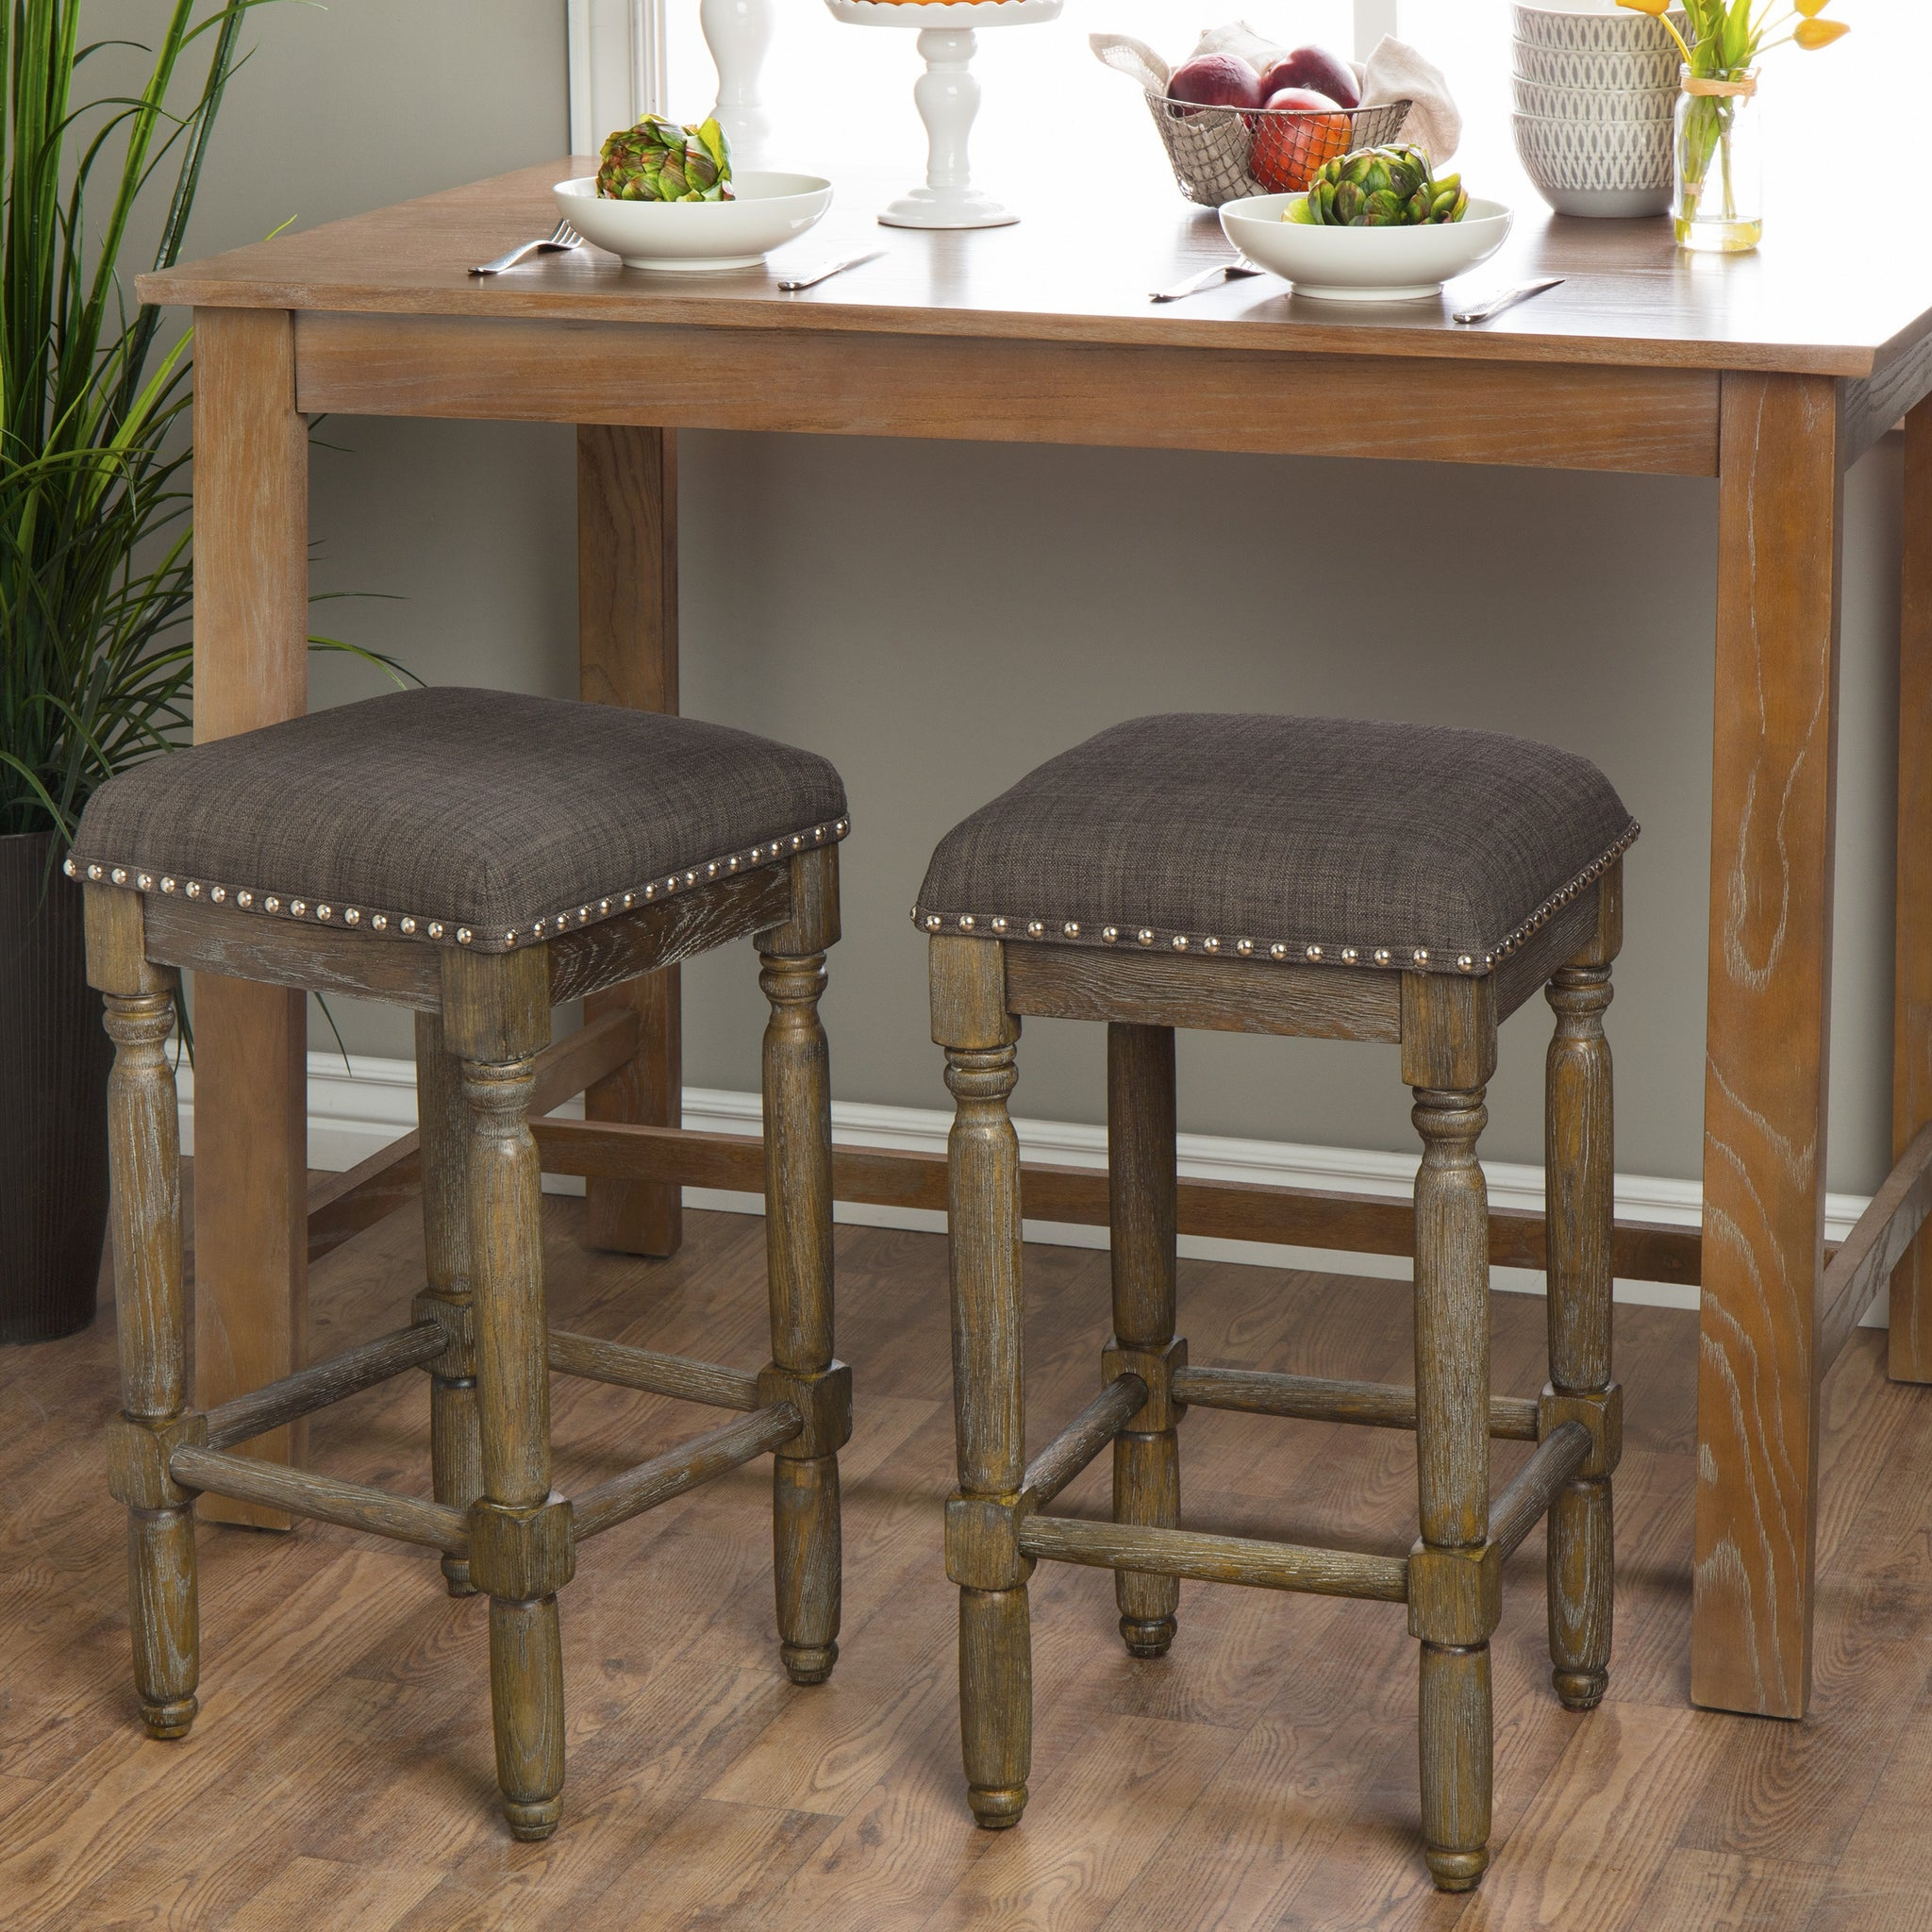 Brown and Grey Counter Stools (Set of 2)